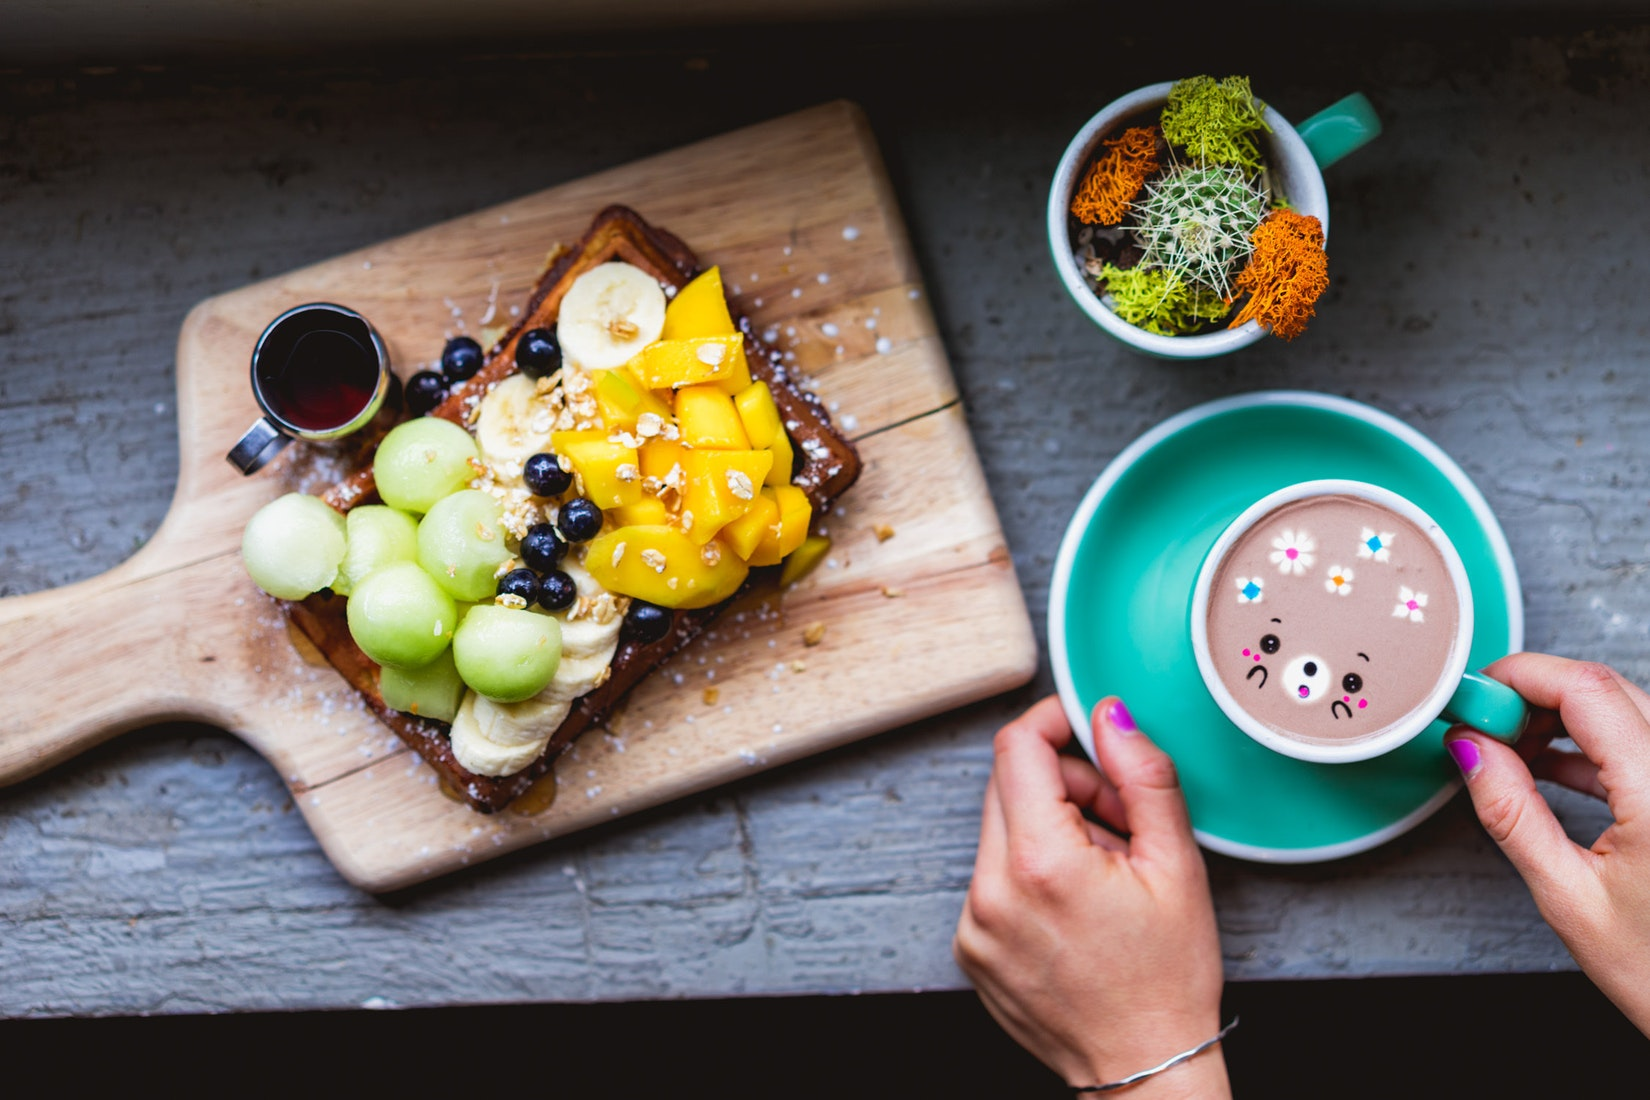 Loaded waffles with mellon, mango, banana and blue berries. On the side of the waffle is a bear latte.